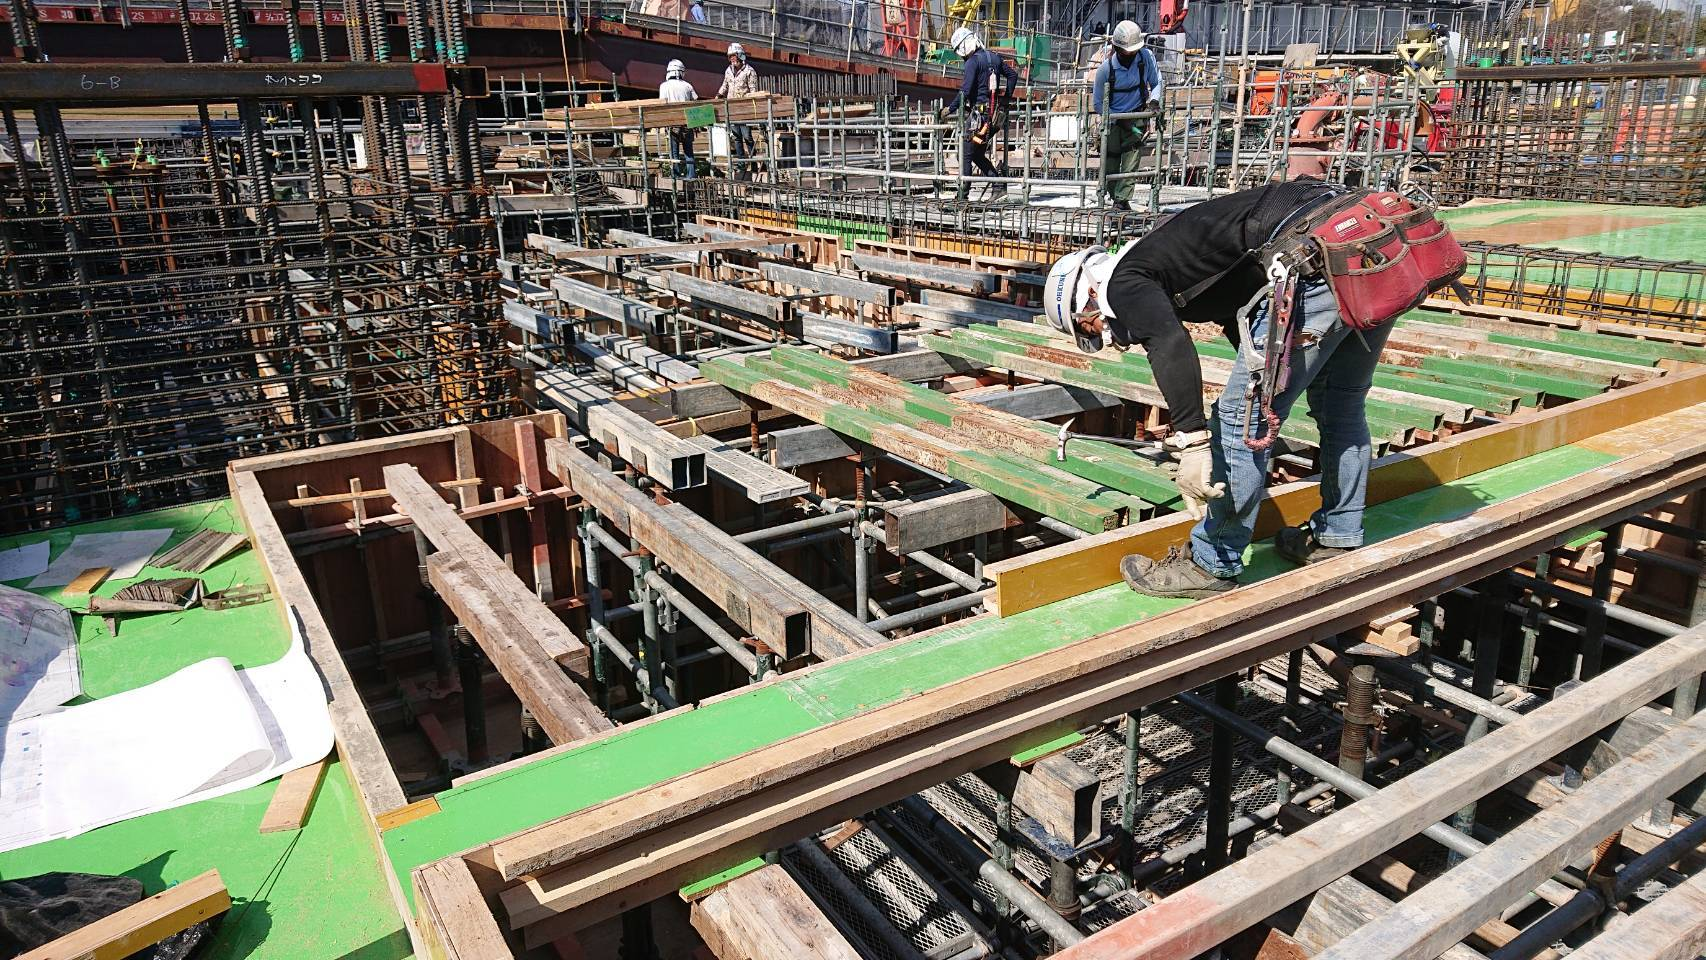 【Gifu】Carpenter at Reinforced Concrete Building Construction Sites